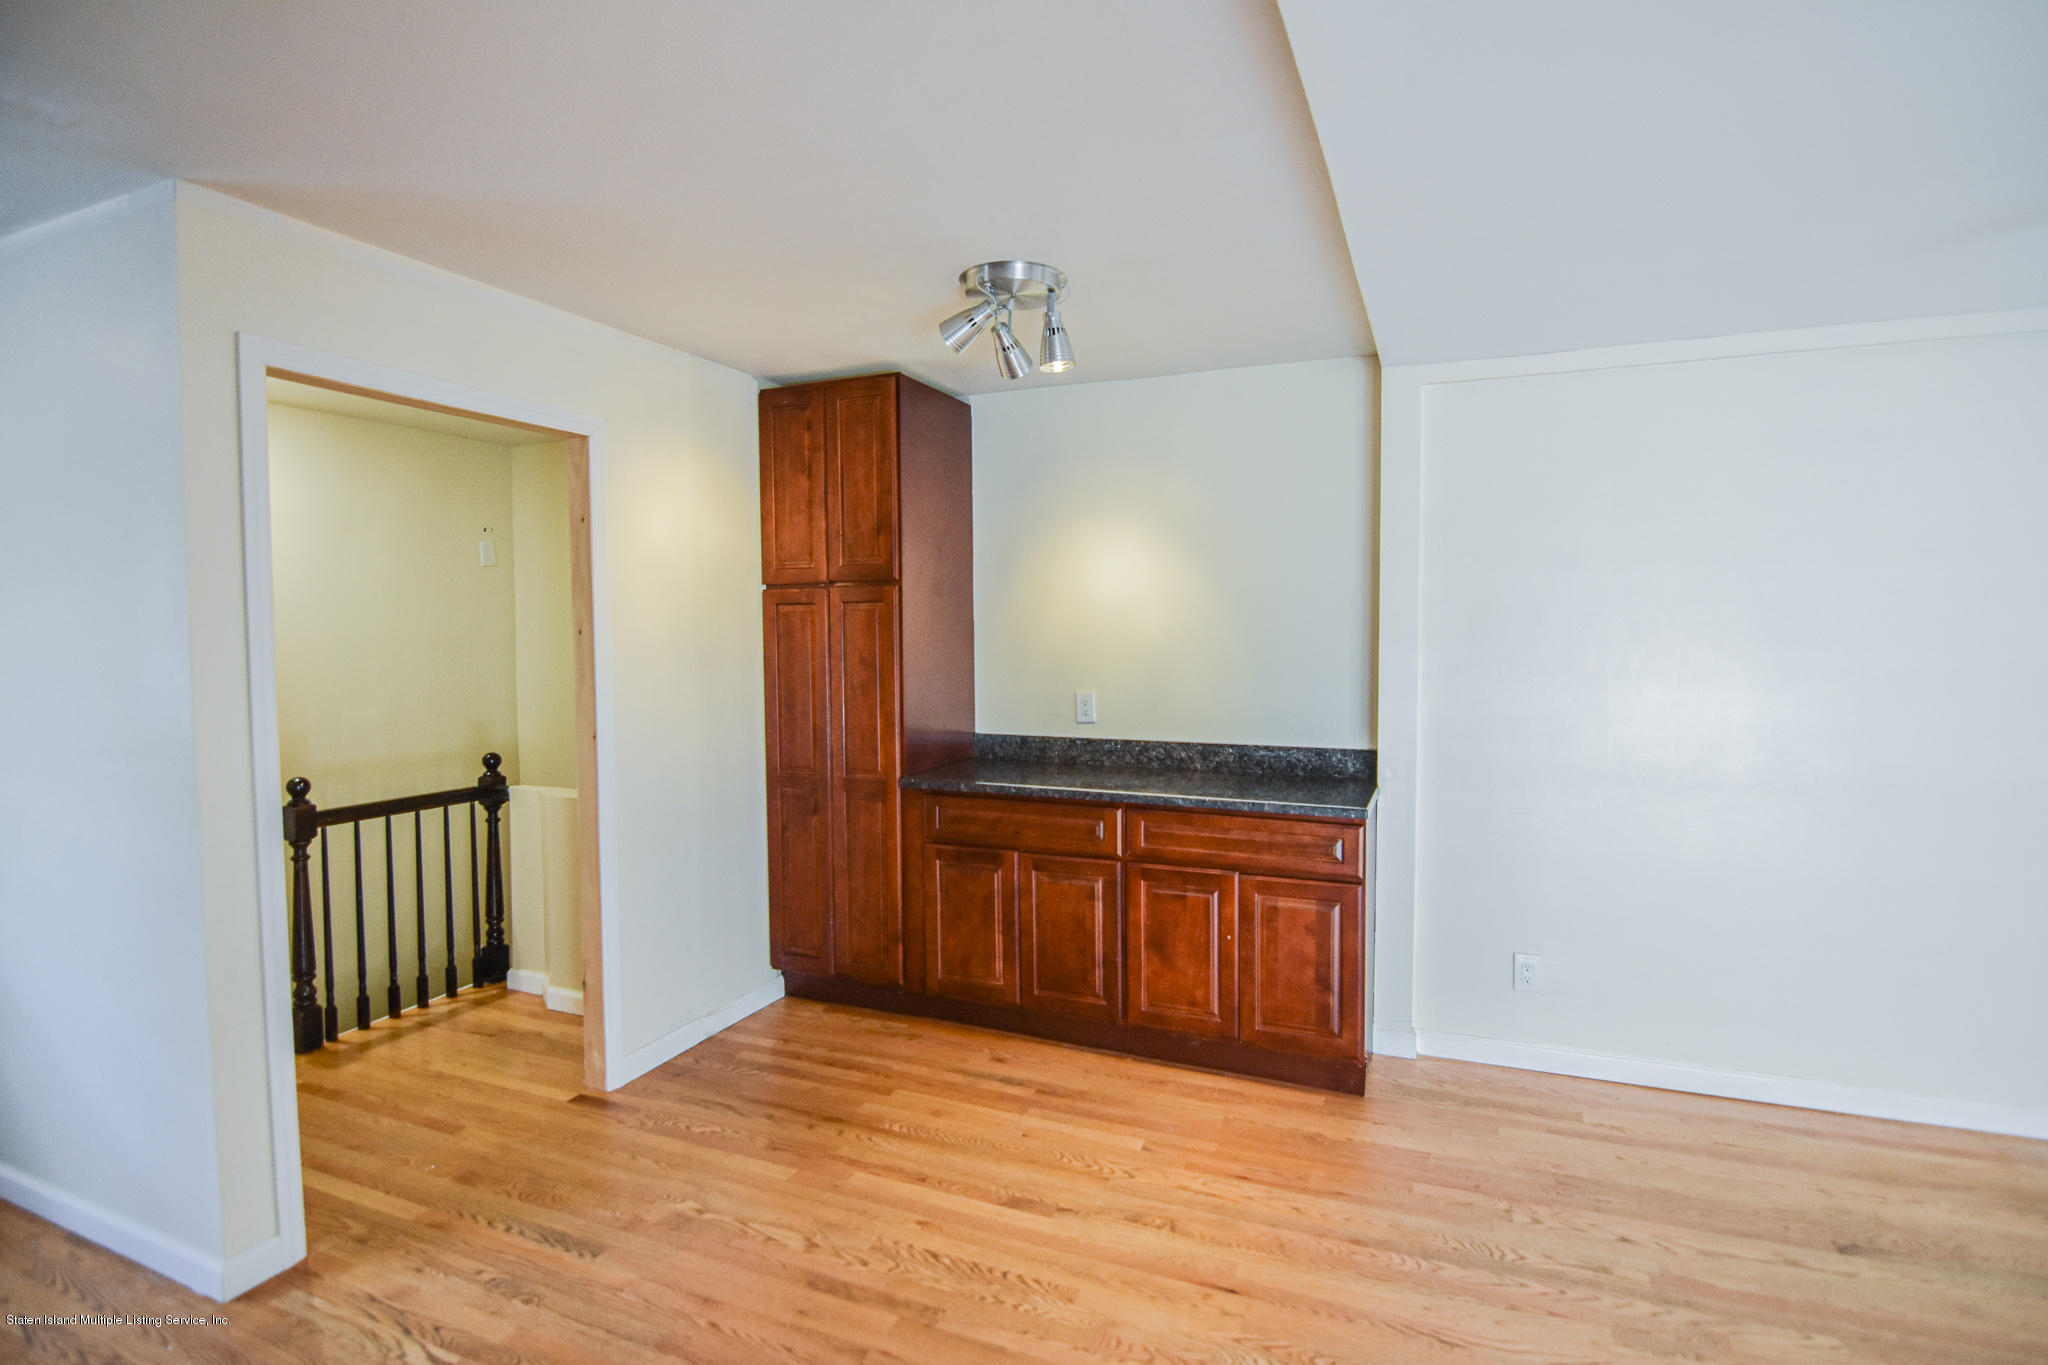 Single Family - Semi-Attached 12 Ebey Lane  Staten Island, NY 10312, MLS-1131132-5